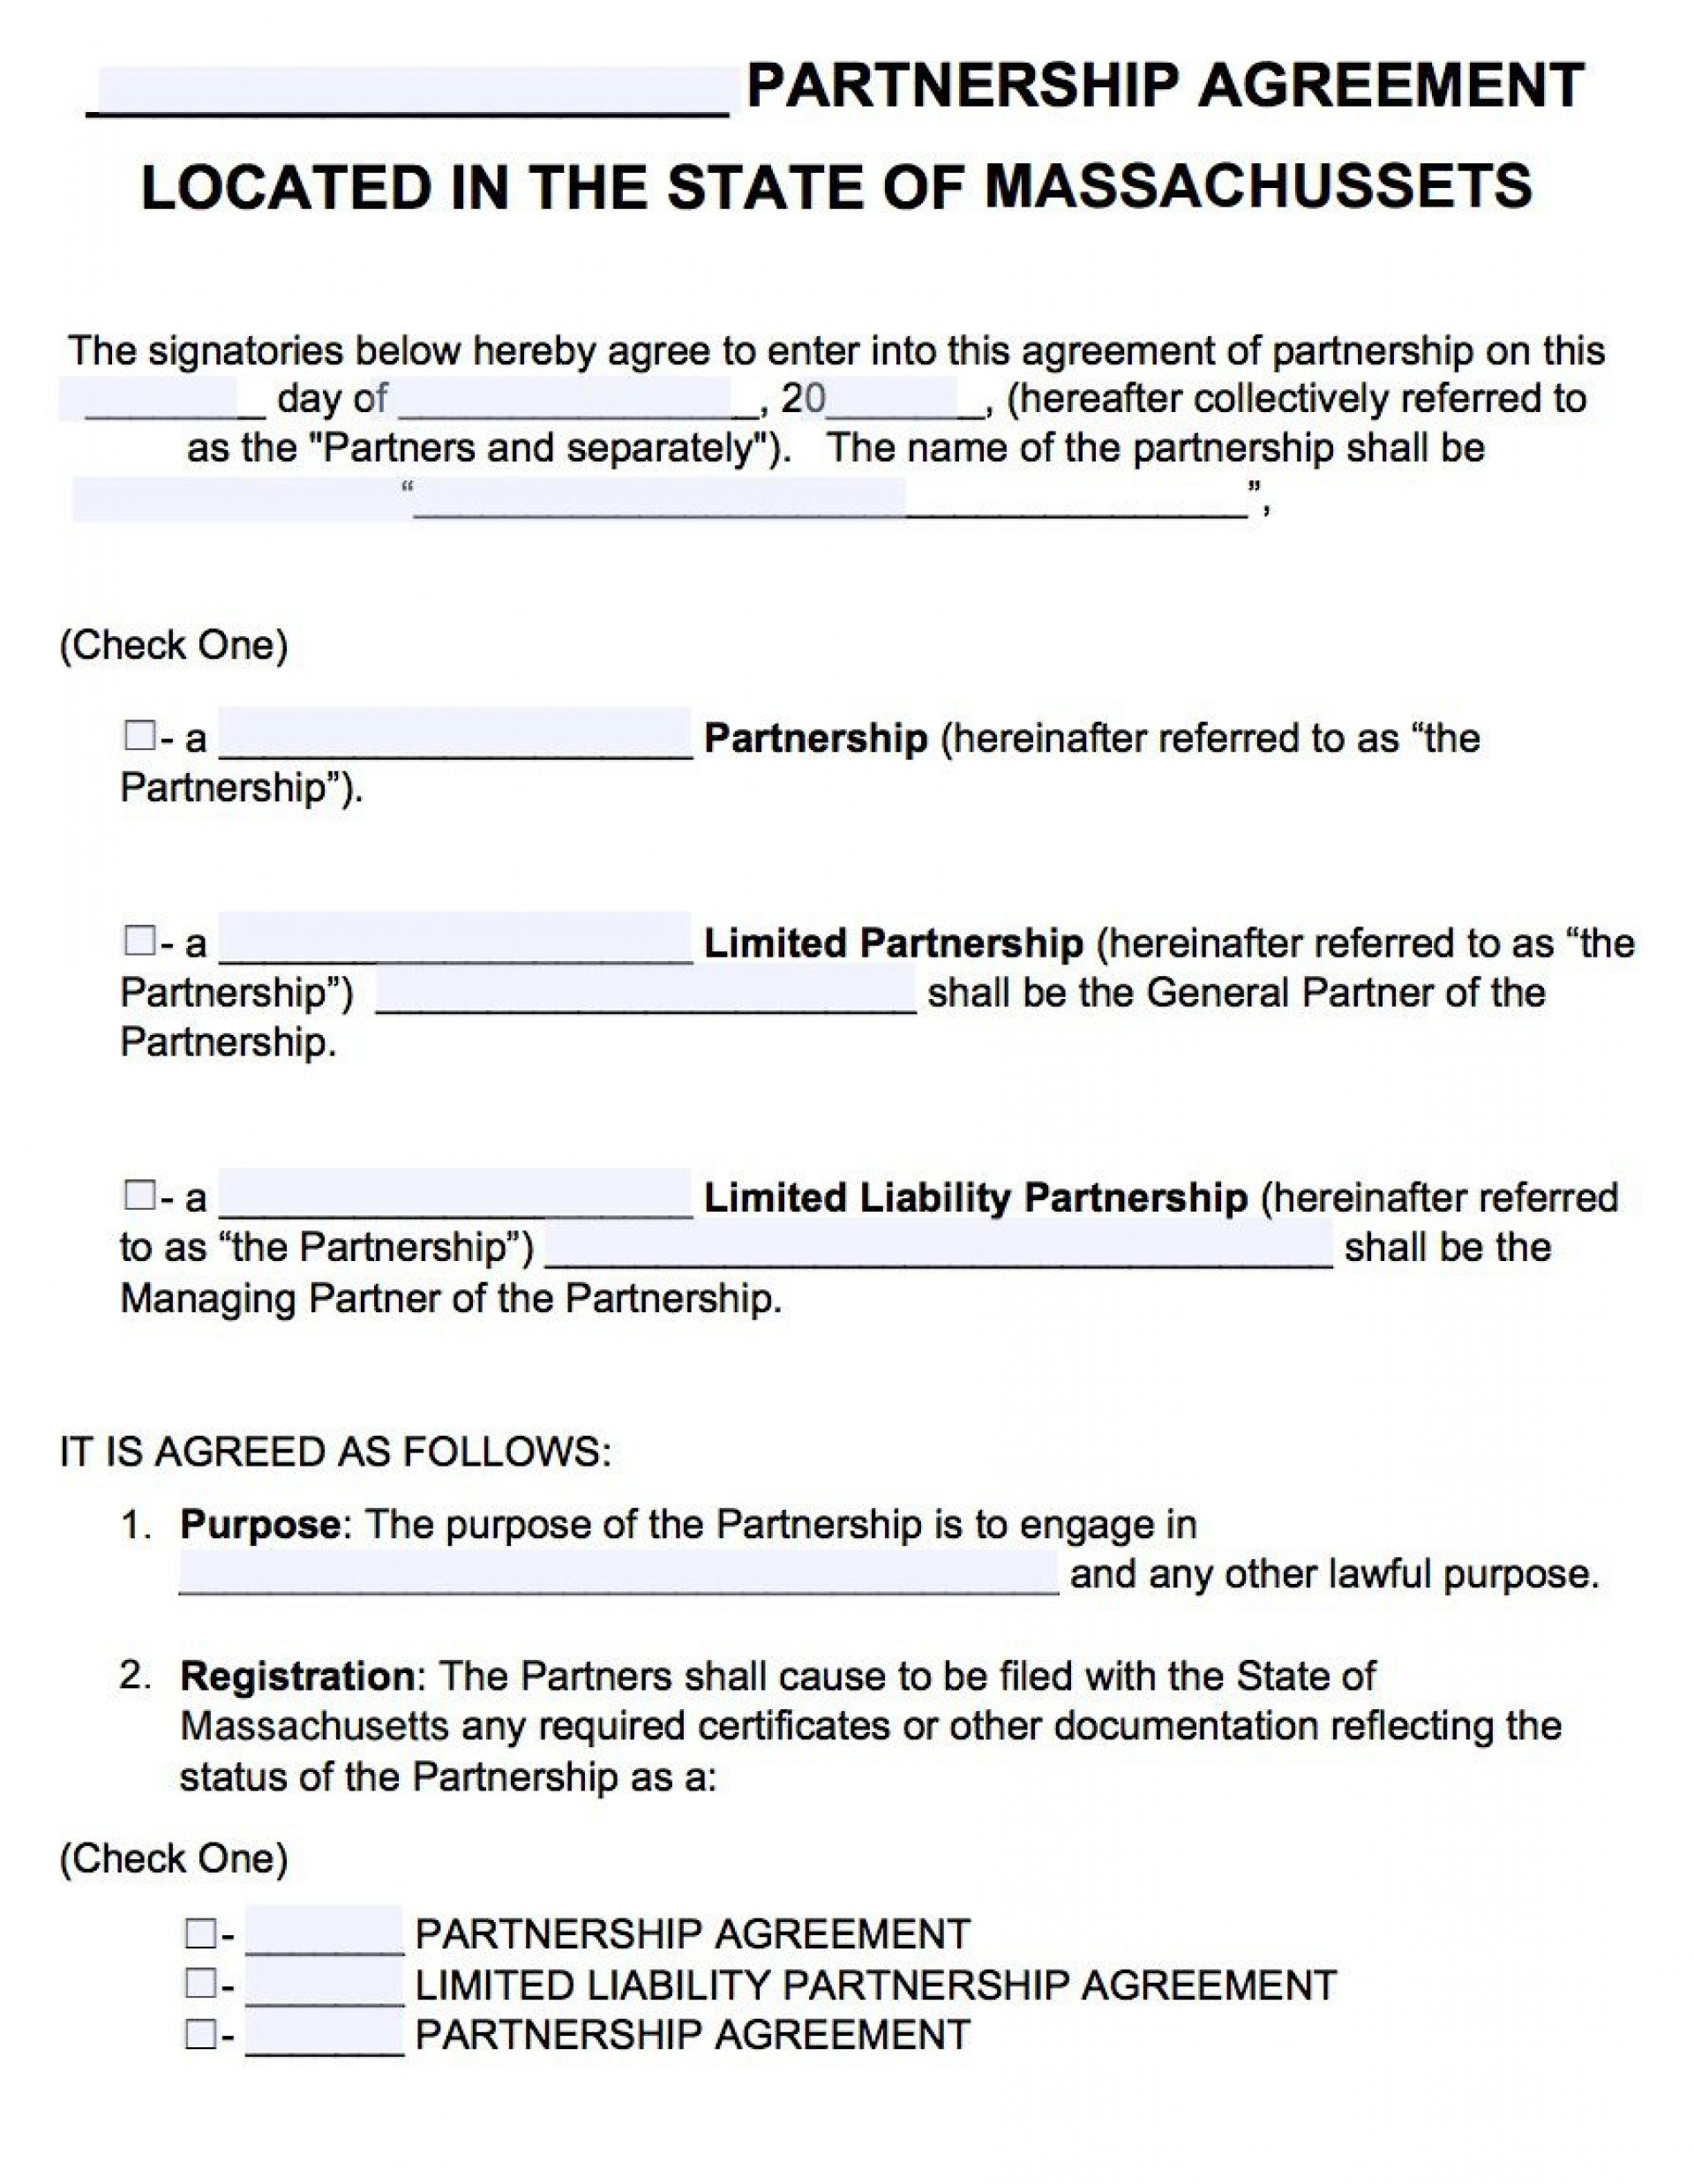 003 Fascinating General Partnership Agreement Template Concept  Word Canada Sample Free1920